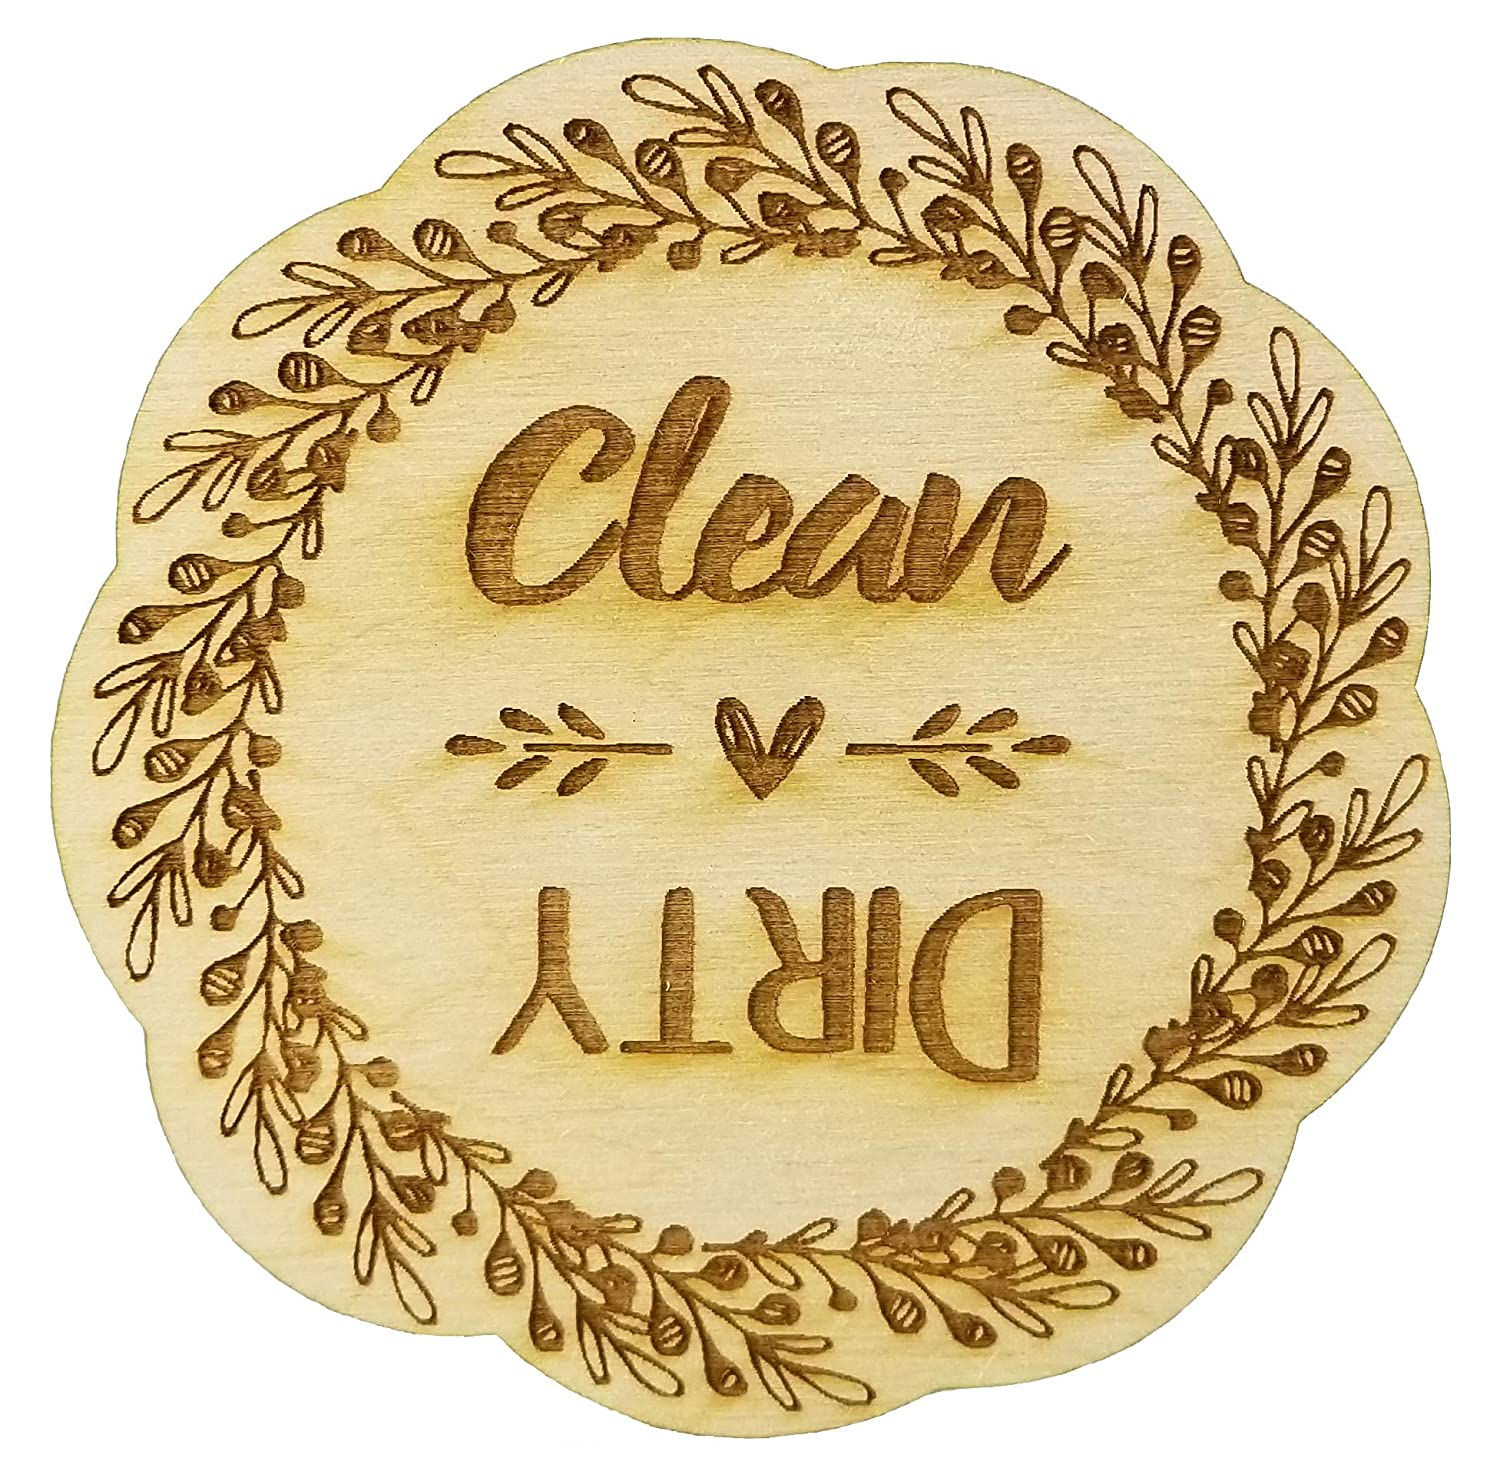 Rustic Wreath Wood Dishwasher Magnet | Clean Dirty 3 Inch Round Magnet | Boho Stylish Shabby Chic Design | Kitchen Magnet for Home Decor, Gift for Men & Women, or Party Favors